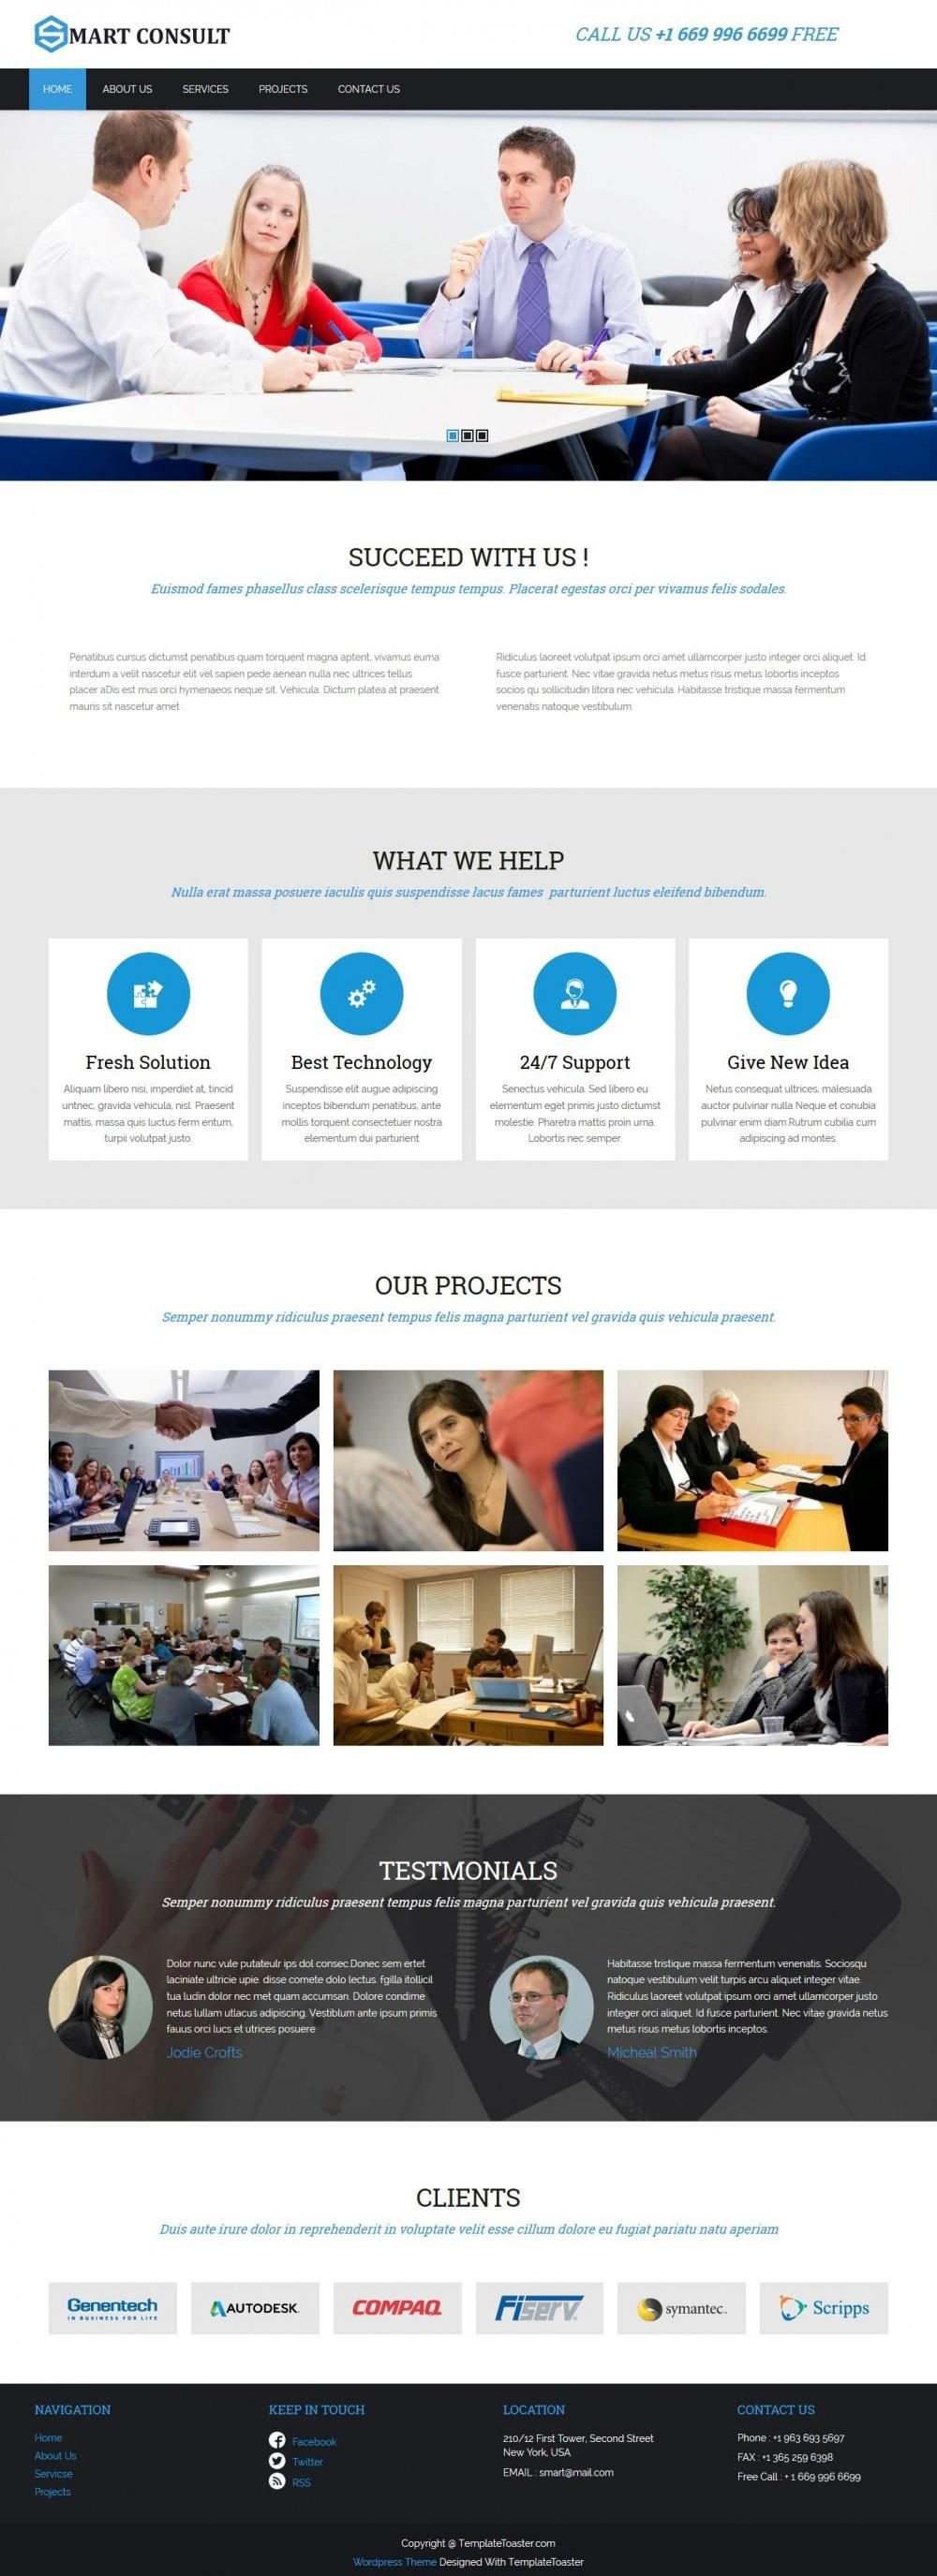 Smart Consultant Business Marketing Services HTML Template